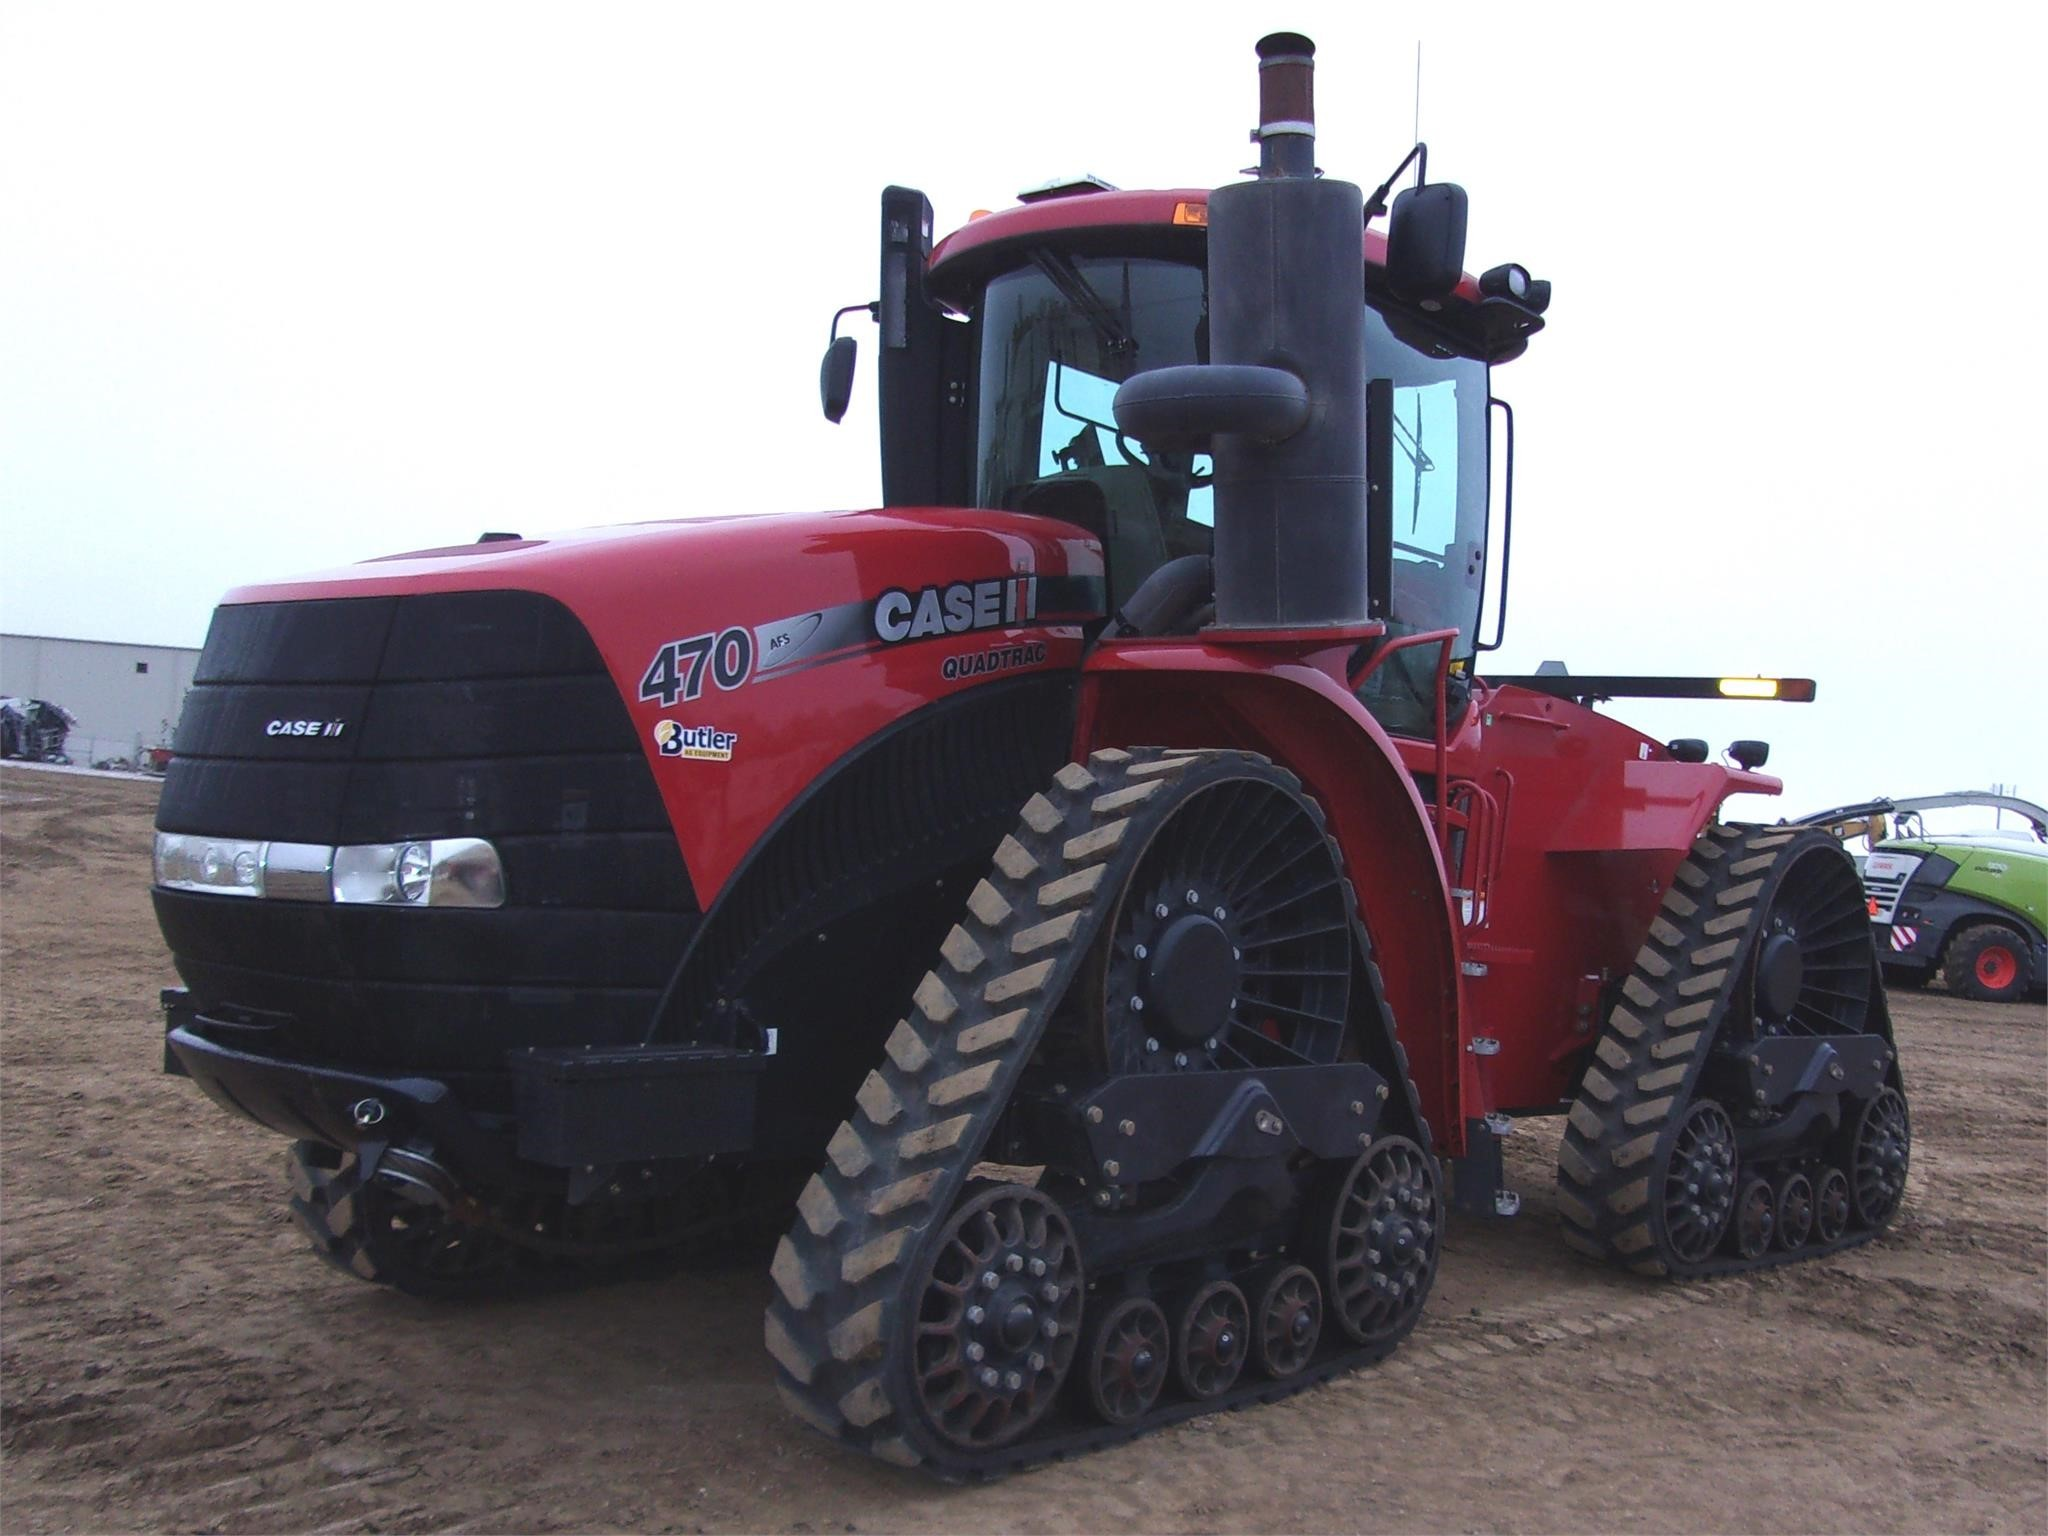 2014 Case IH Steiger 470 RowTrac Tractor